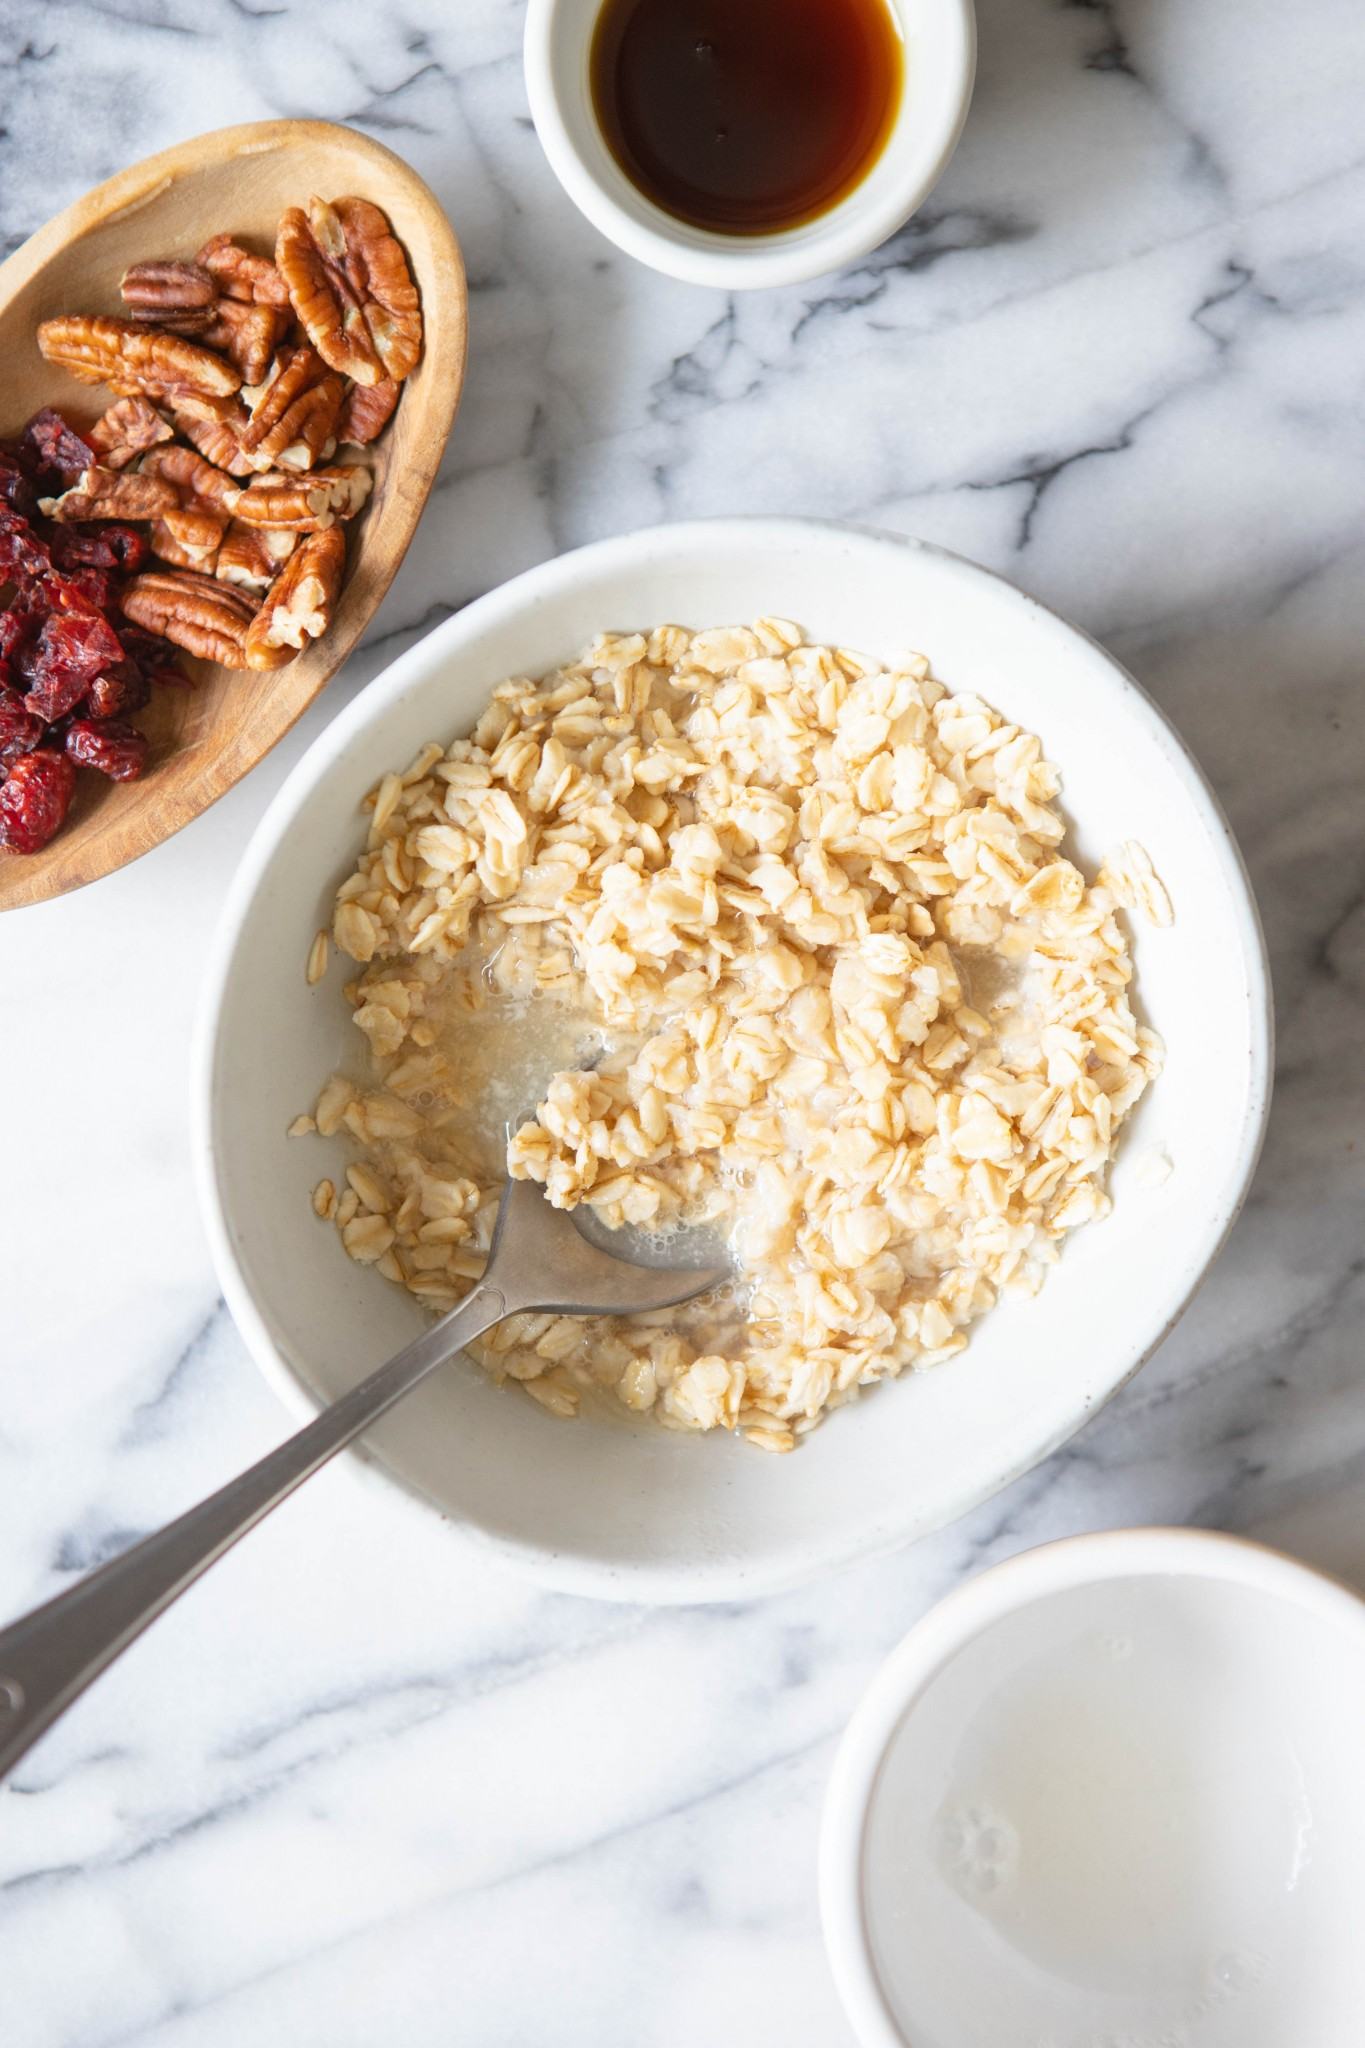 spoon stirring in egg whites into oatmeal in a white bowl